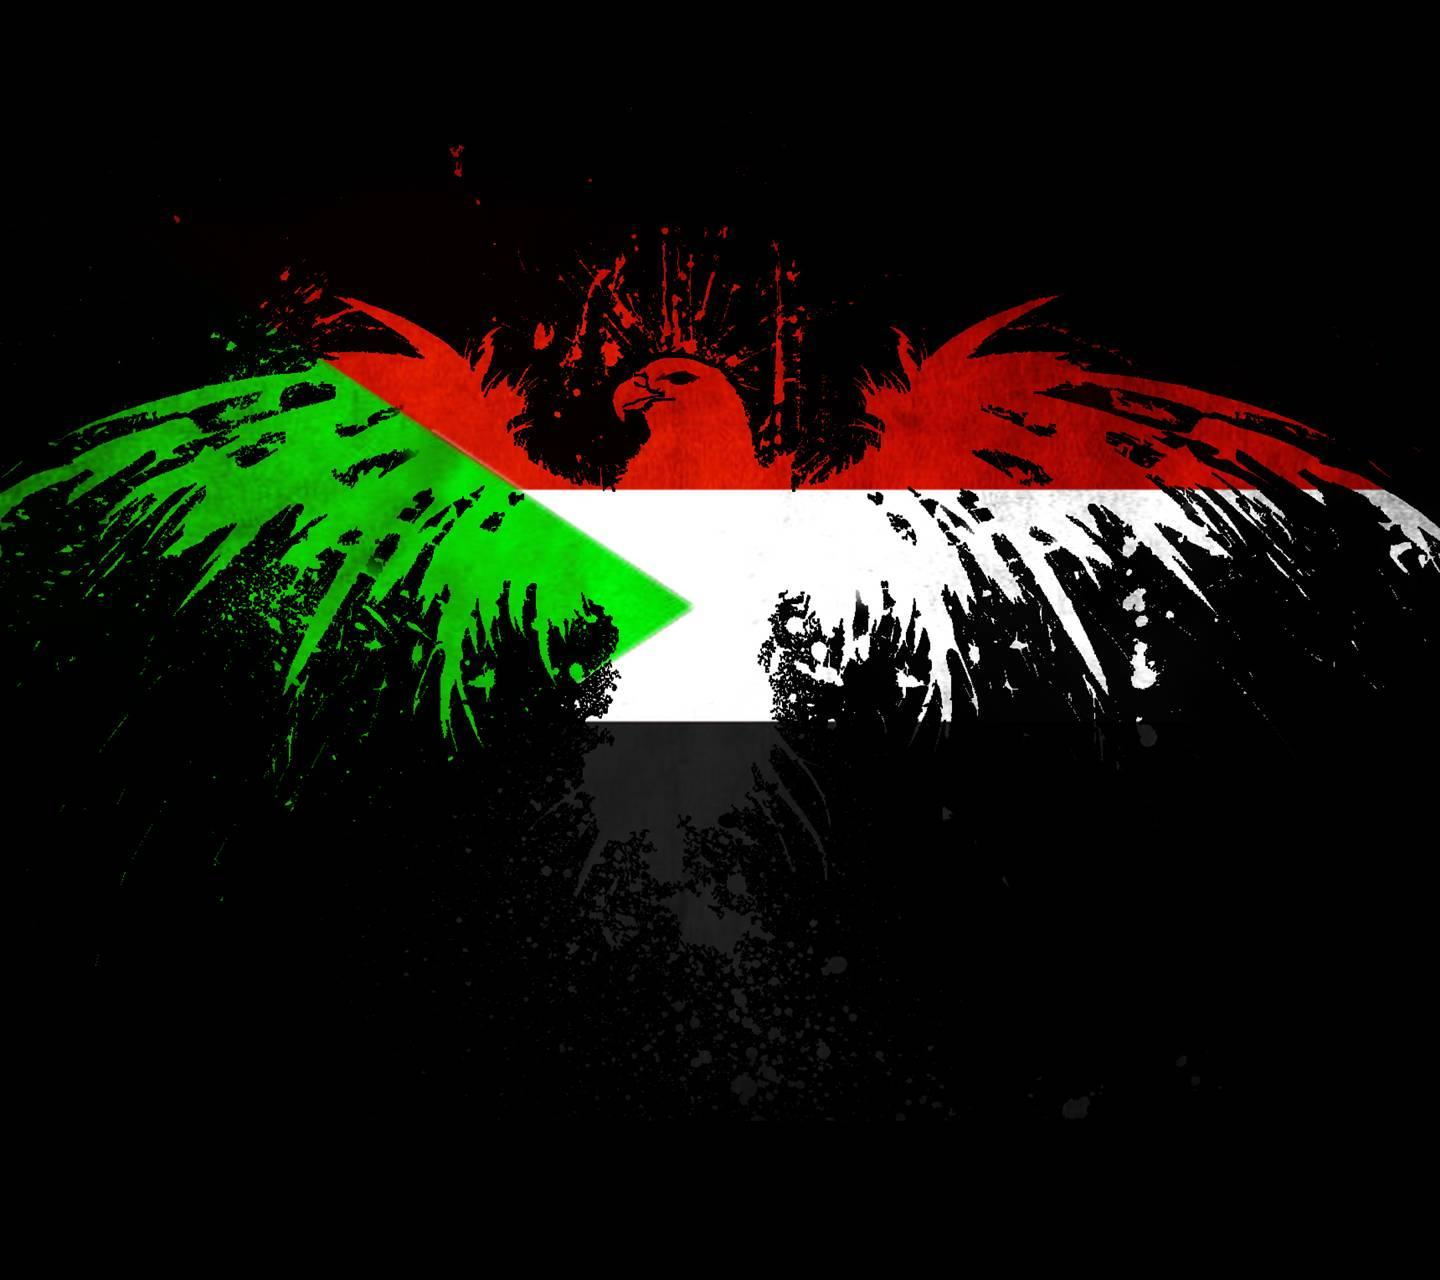 Sudan Wallpaper by GoTHFuL - d2 - Free on ZEDGE™